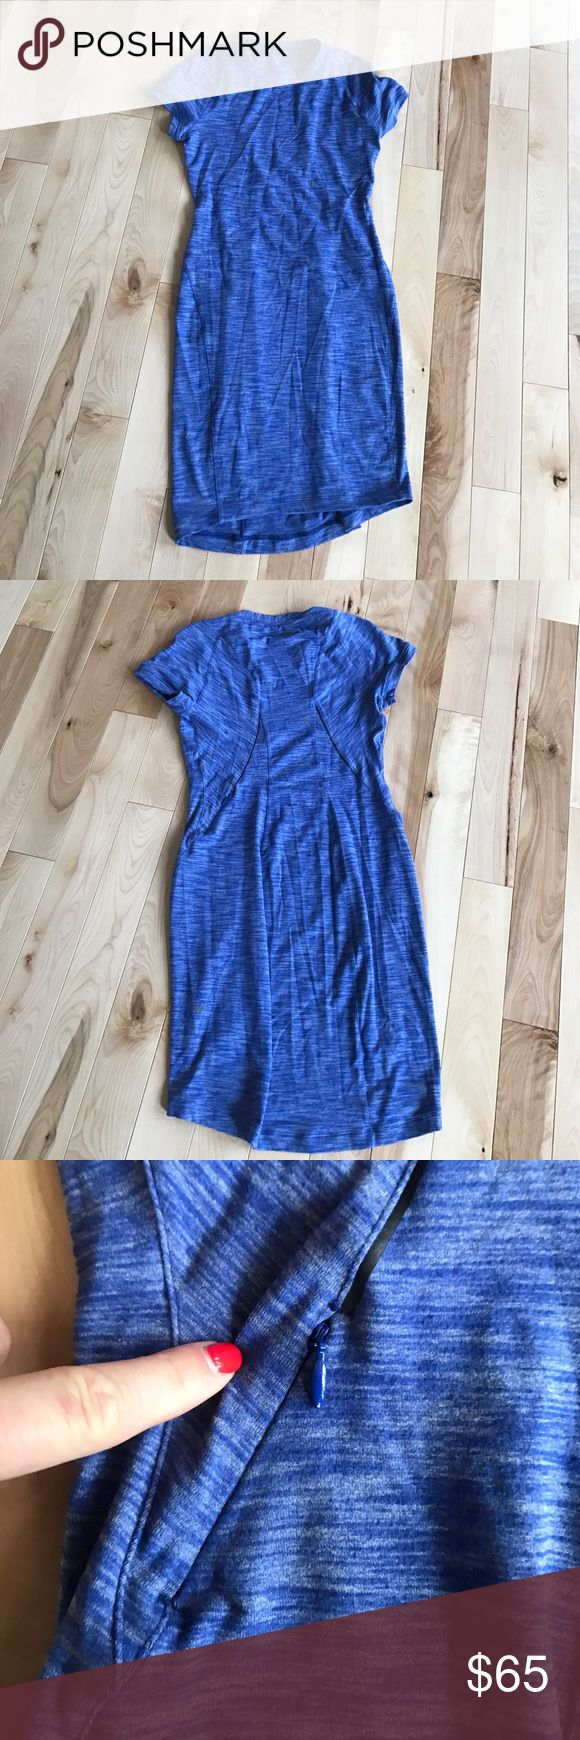 Lululemon dress size 6 Brand new never worn! Lululemon dress with a back pocket! Love it!! lululemon athletica Dresses